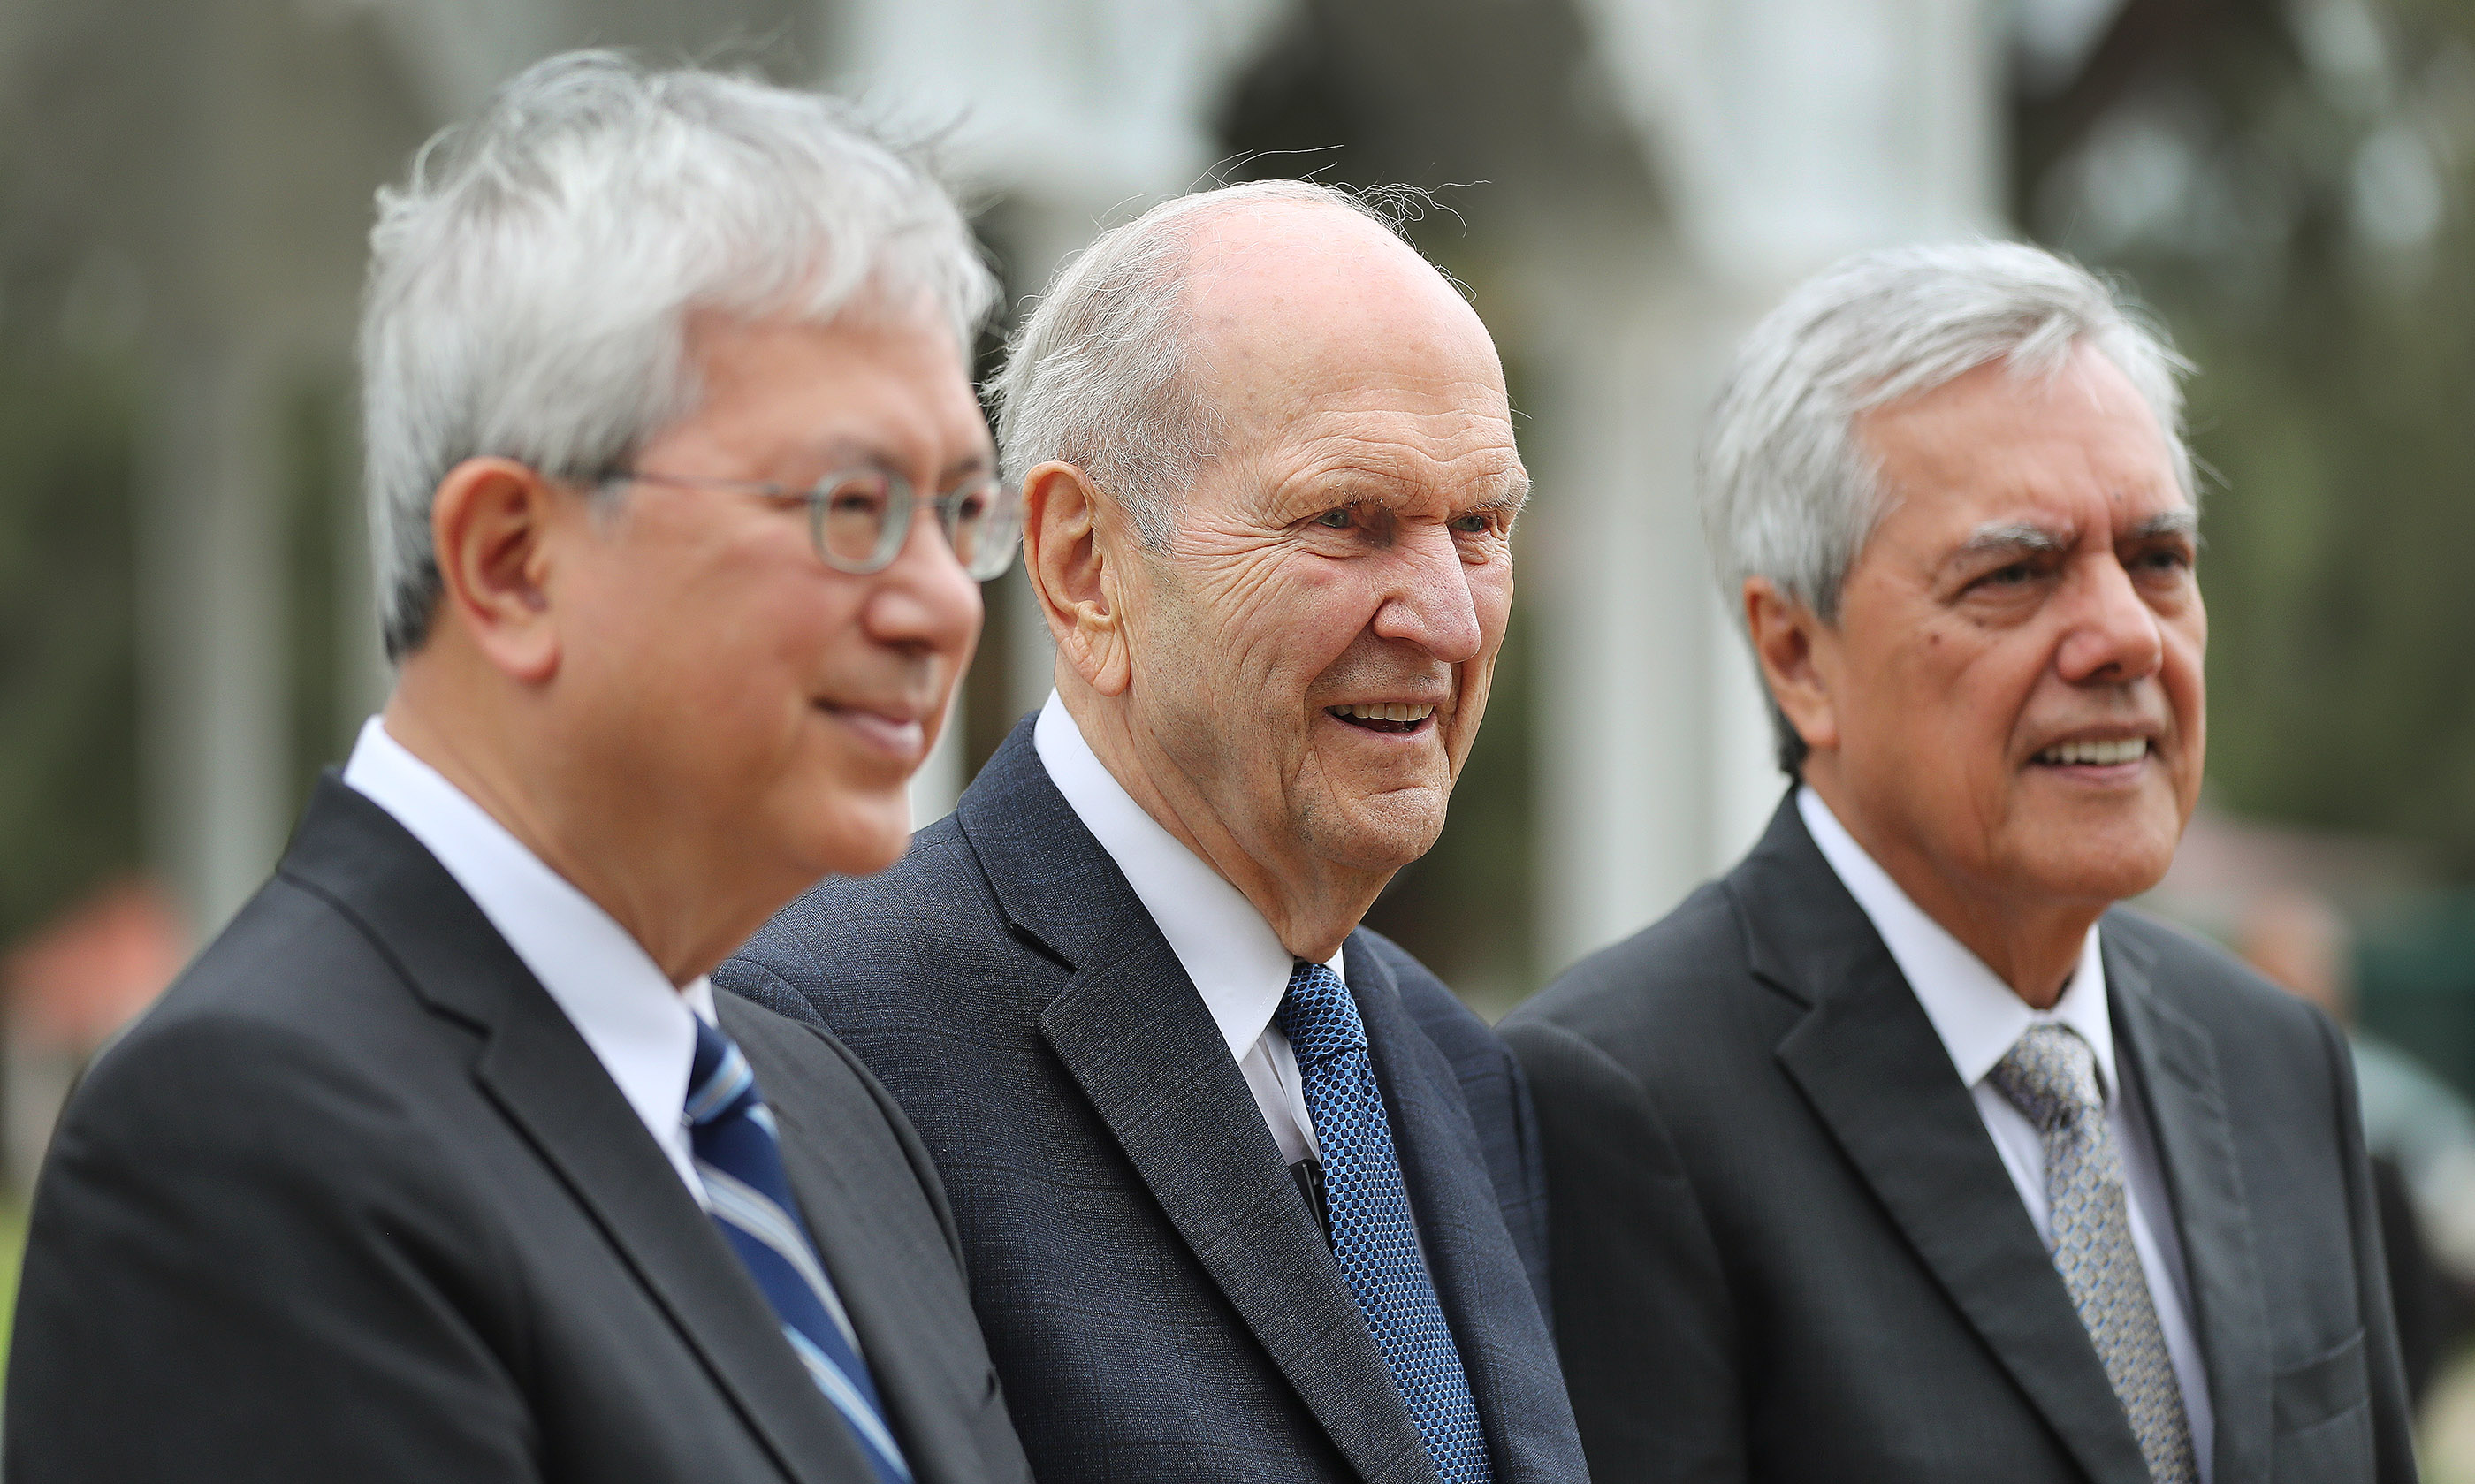 President Russell M. Nelson of The Church of Jesus Christ of Latter-day Saints, Elder Gerrit W. Gong of the Quorum of the Twelve Apostles and Elder O. Vincent Halleck speak with media after meeting with 'Aho'eitu Tupou VI, King of Tonga, at the Royal Palace in Tonga on May 23, 2019.